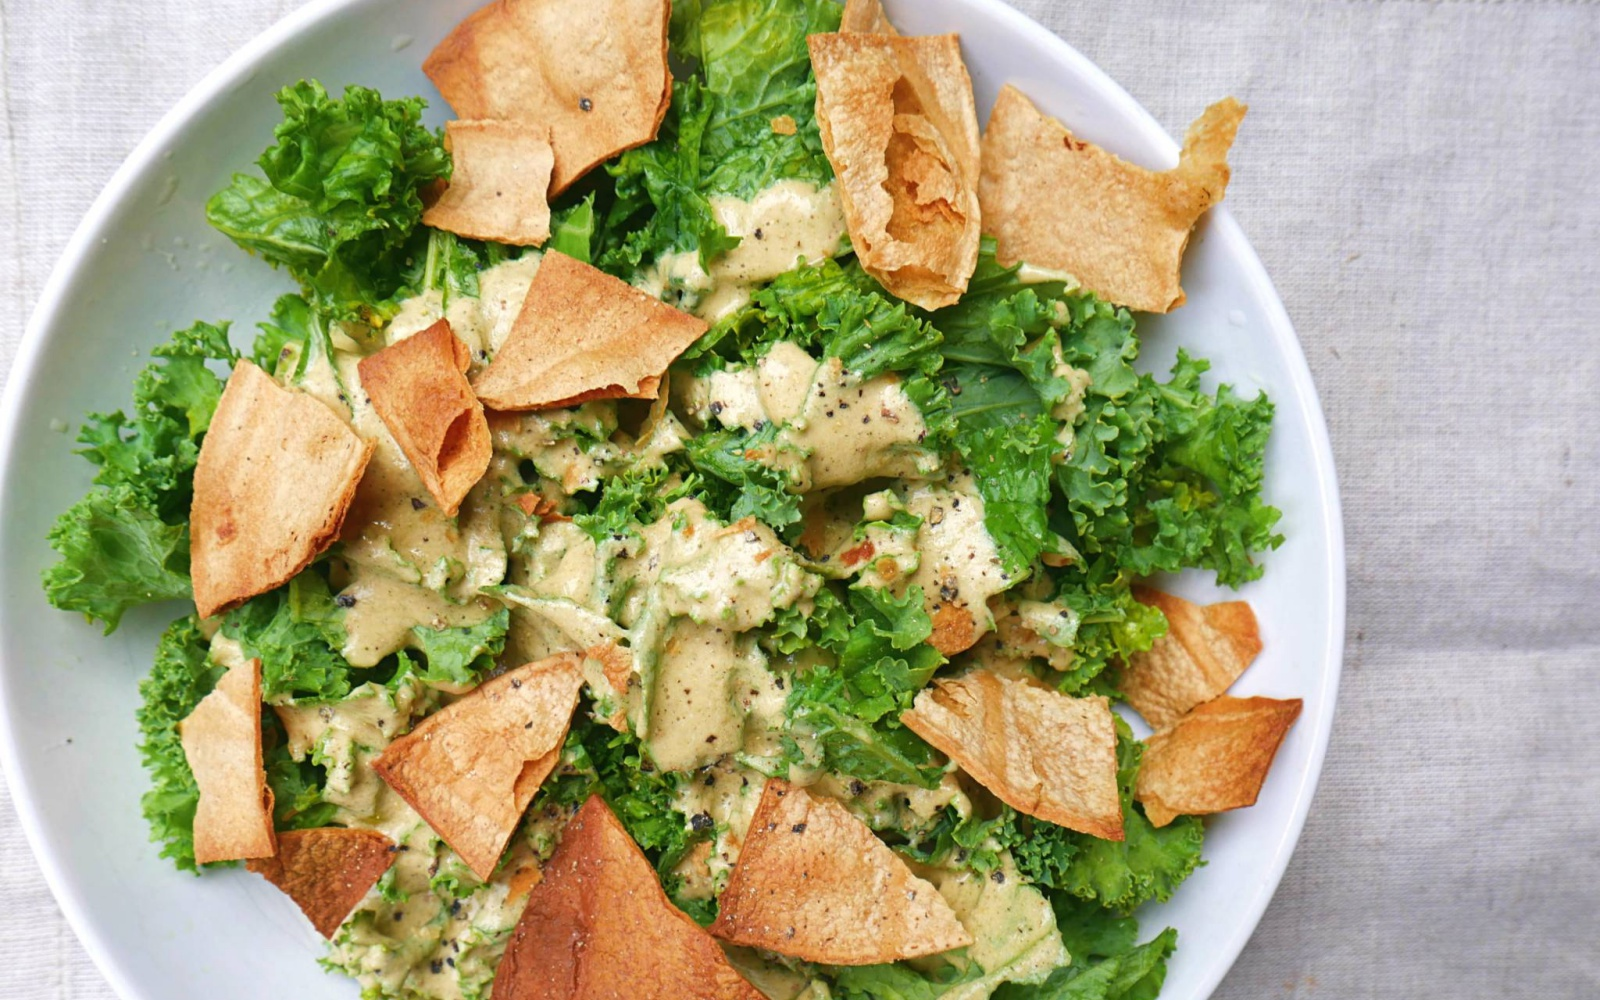 Kale caesar salad with oil-free croutons